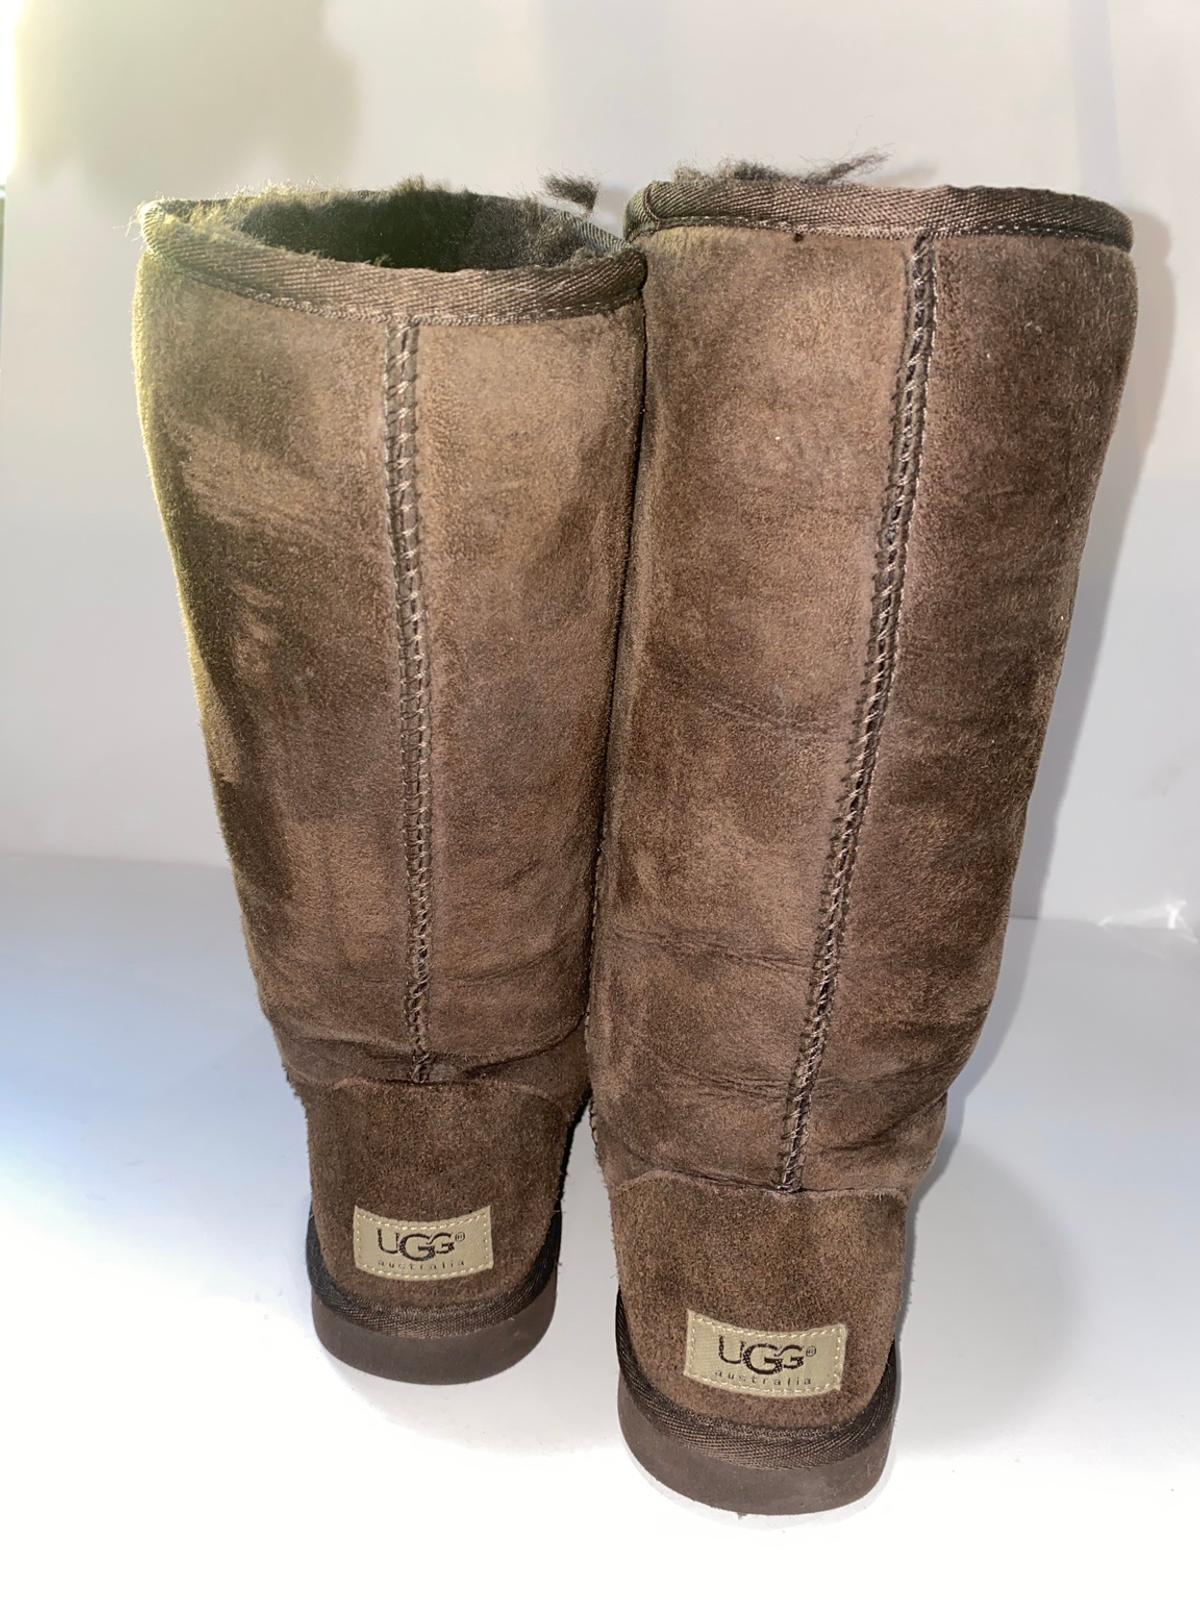 "UGG Classic Tall Boot, Size 8, Currently being sold retail, Pre-owned, Very Good Condition, Minor signs of wear shown in pictures with plenty of years of wear for your pleasure, Seams intact, interior fur is not matted, Rubber sole, suede leather and sheepskin fur interior; approximate height of boot shaft 11.75"". Ship only sales with payment made using PayPal."